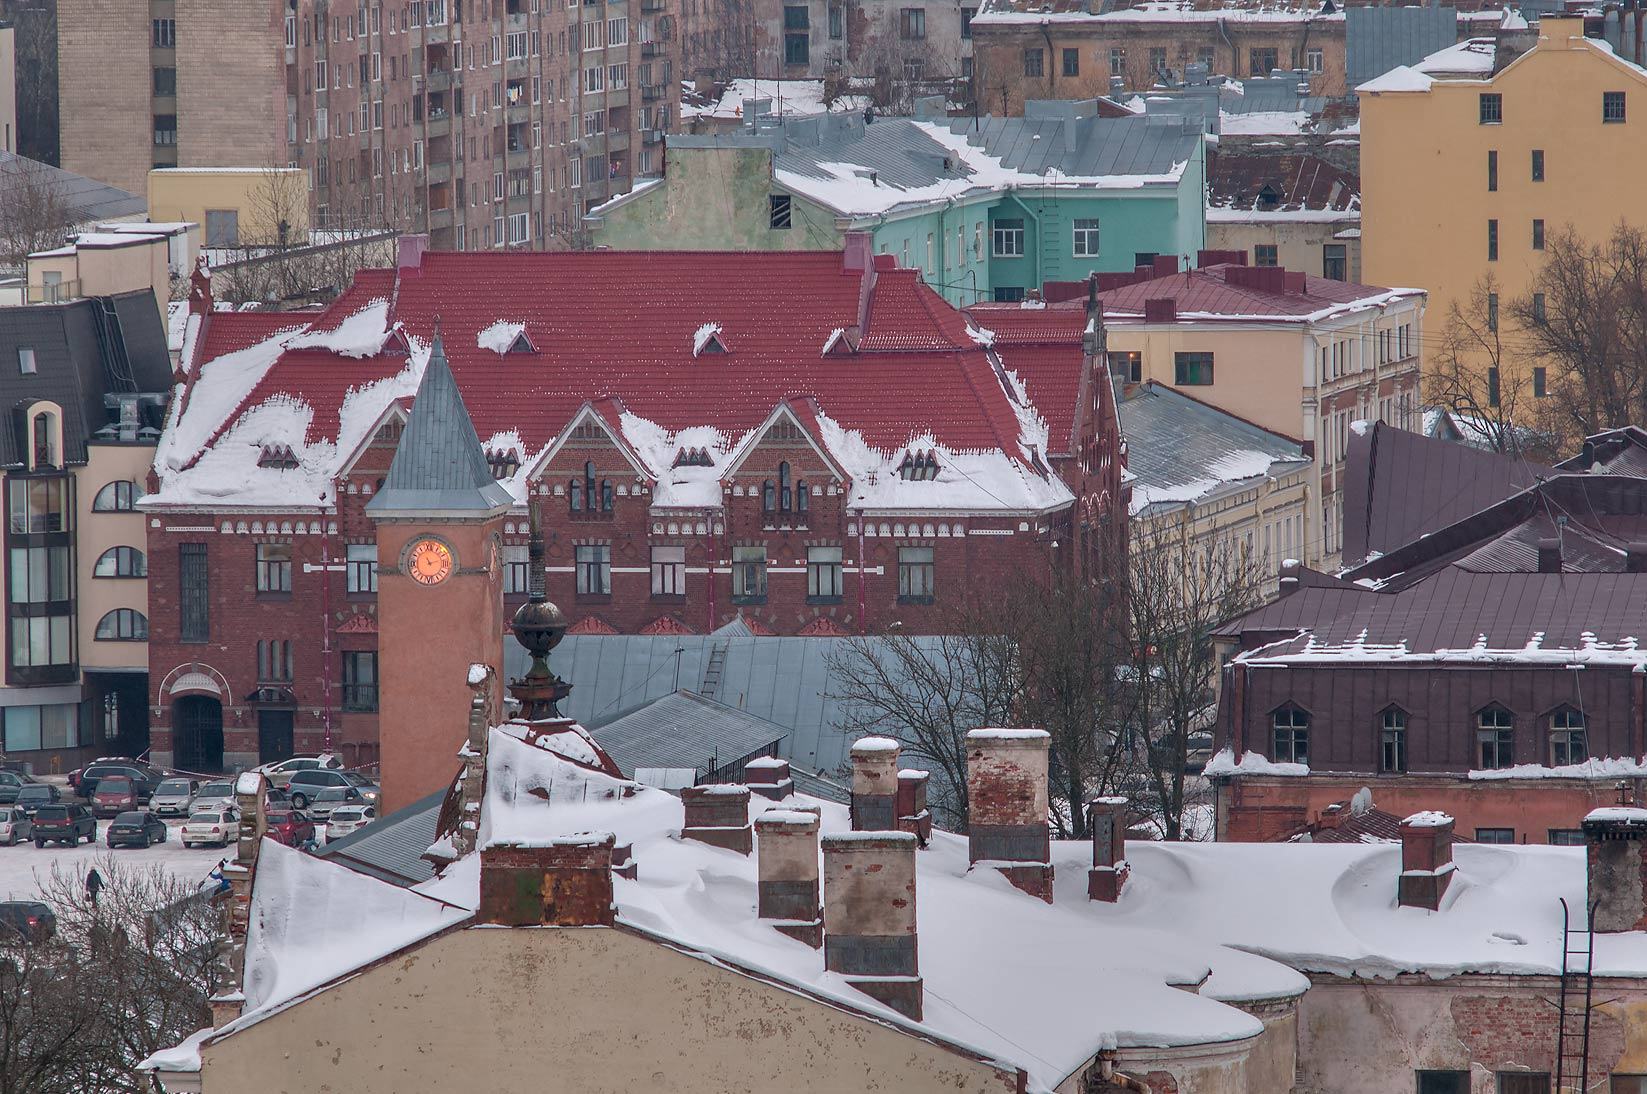 Area of Market Square from St. Olaf Tower of Vyborg Castle. Vyborg, Russia